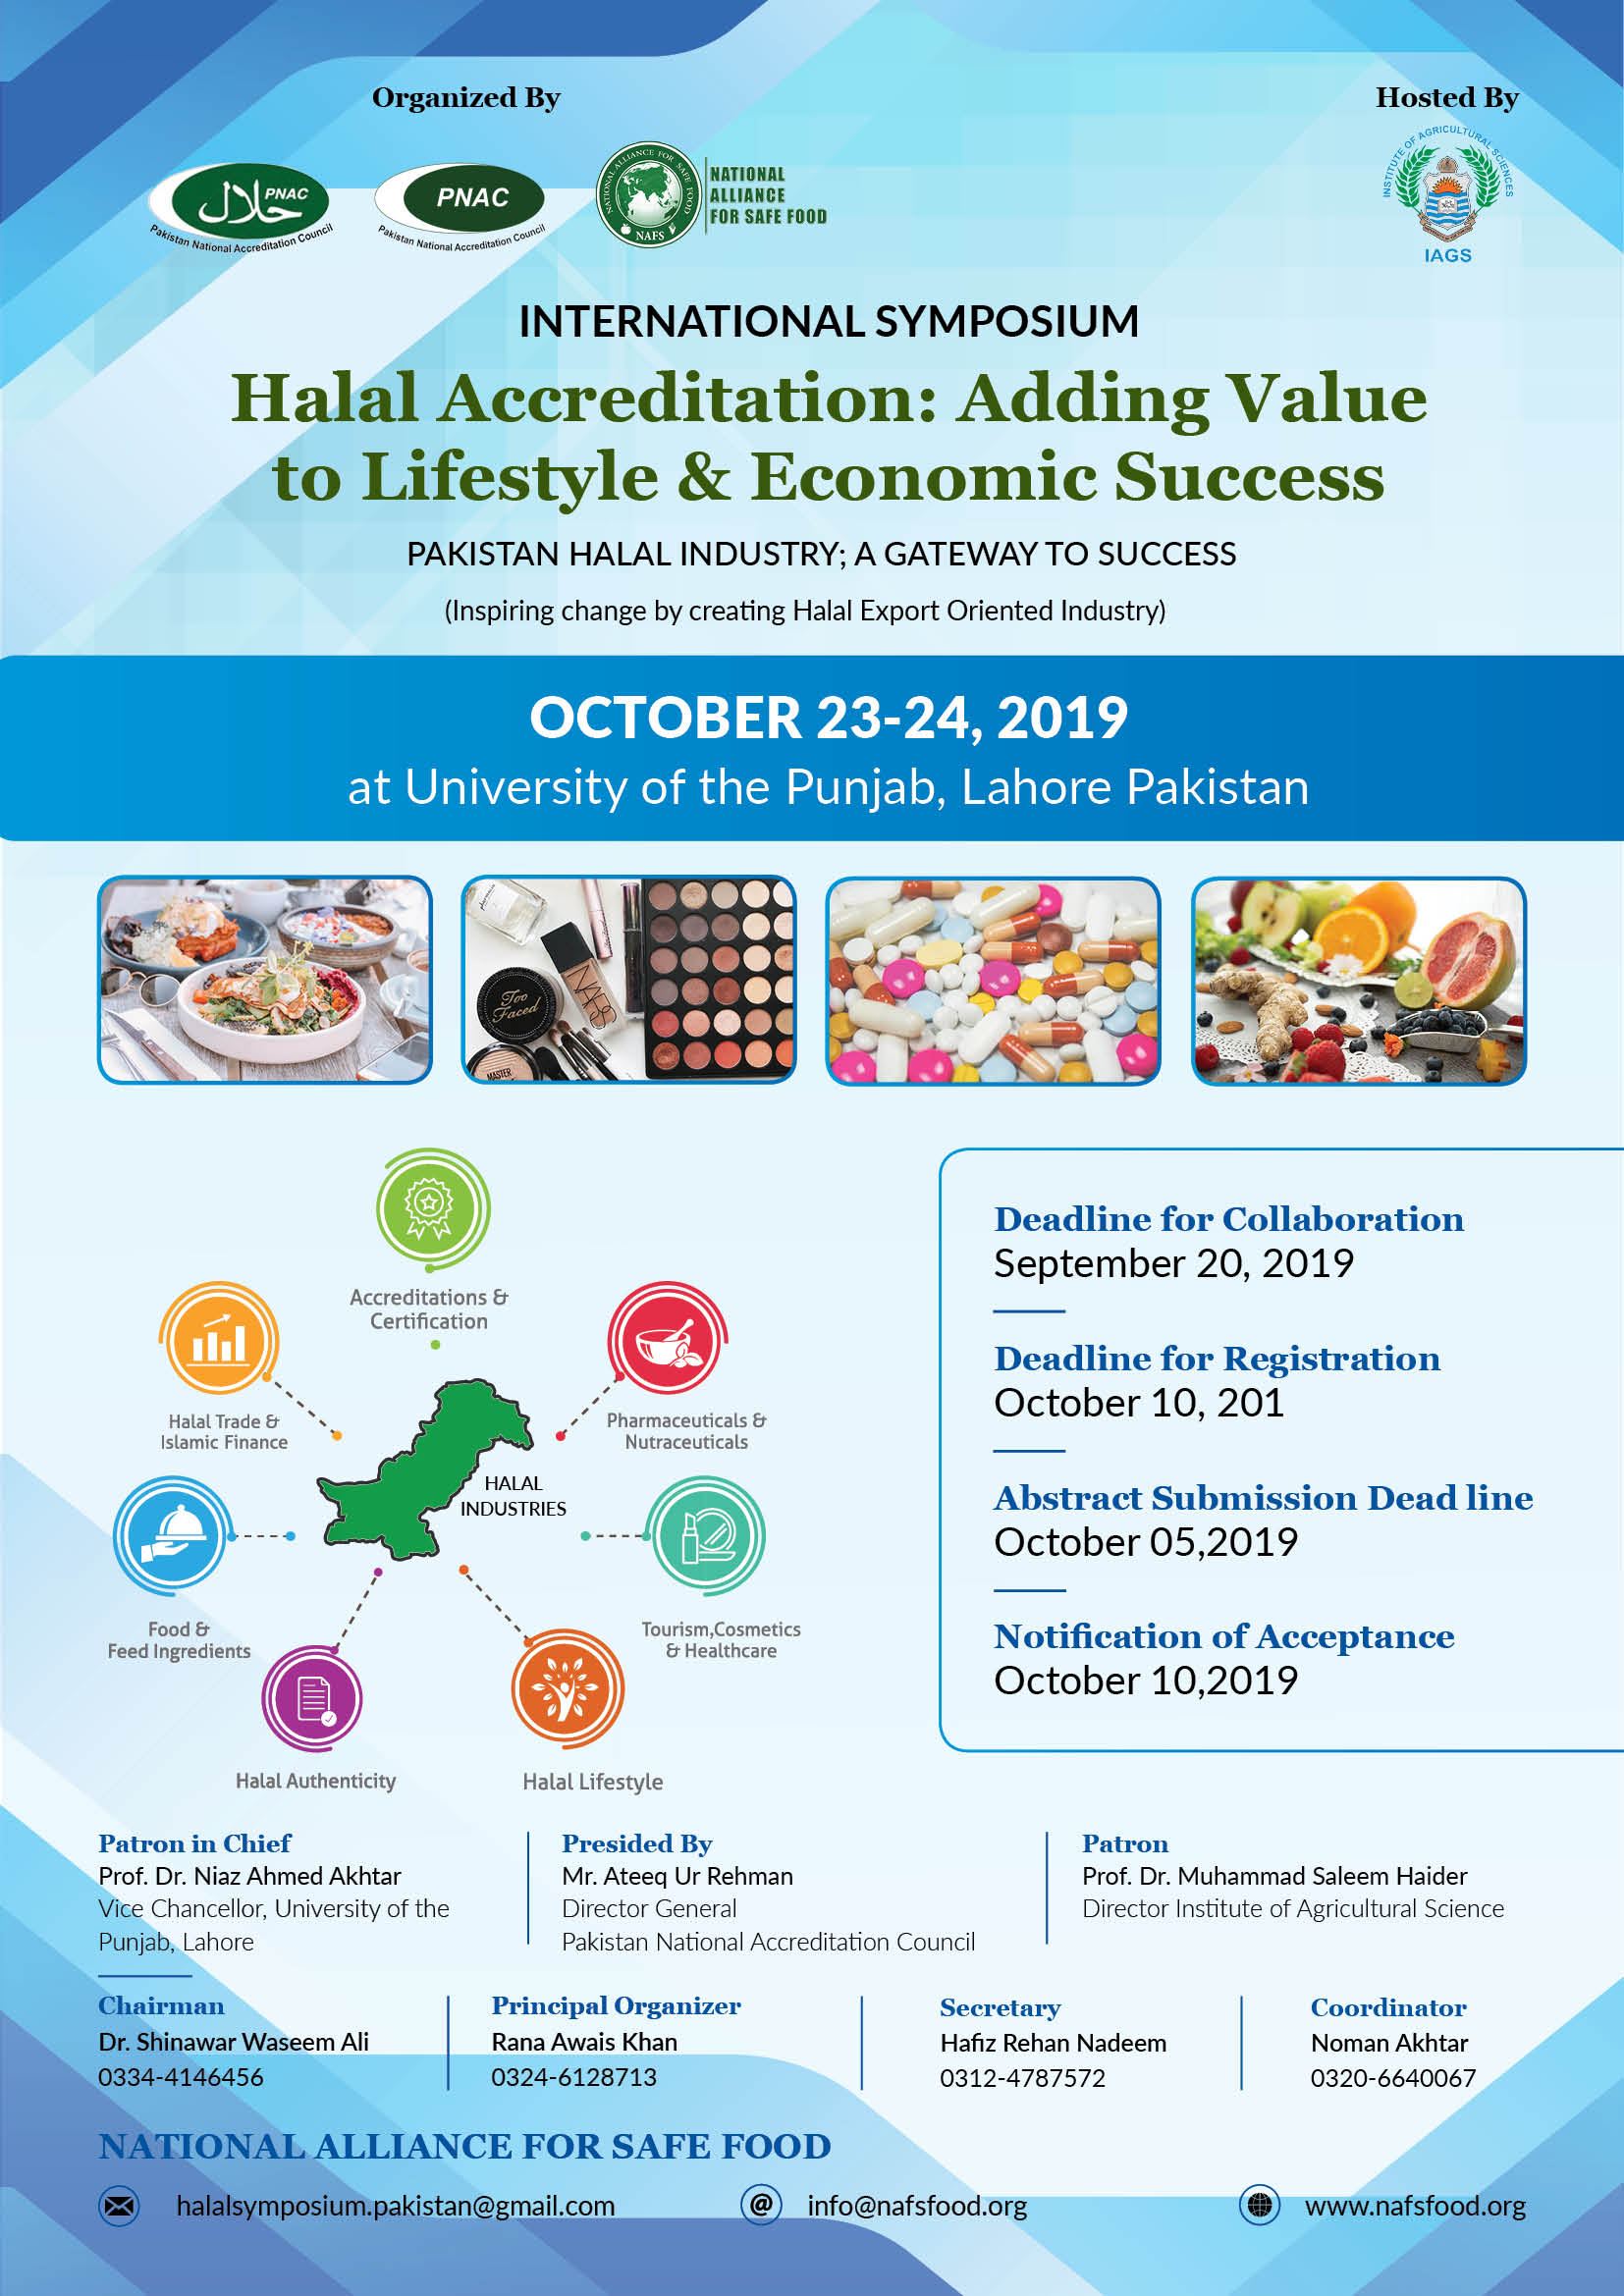 International Symposium on Pakistan Halal Industry